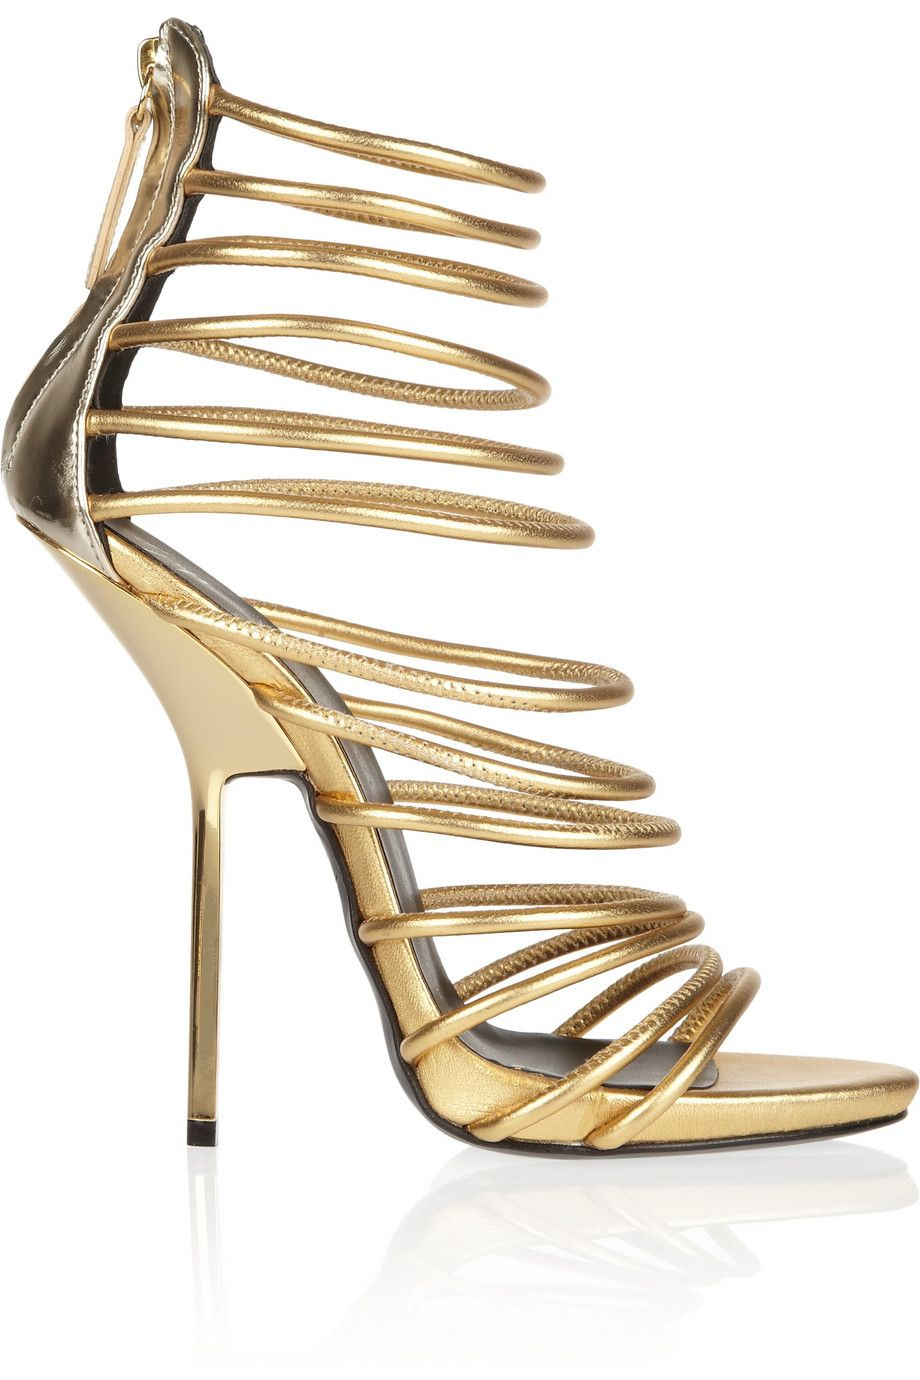 Fashion trend of Designer Gold High Heel Gladiator Sandals ...